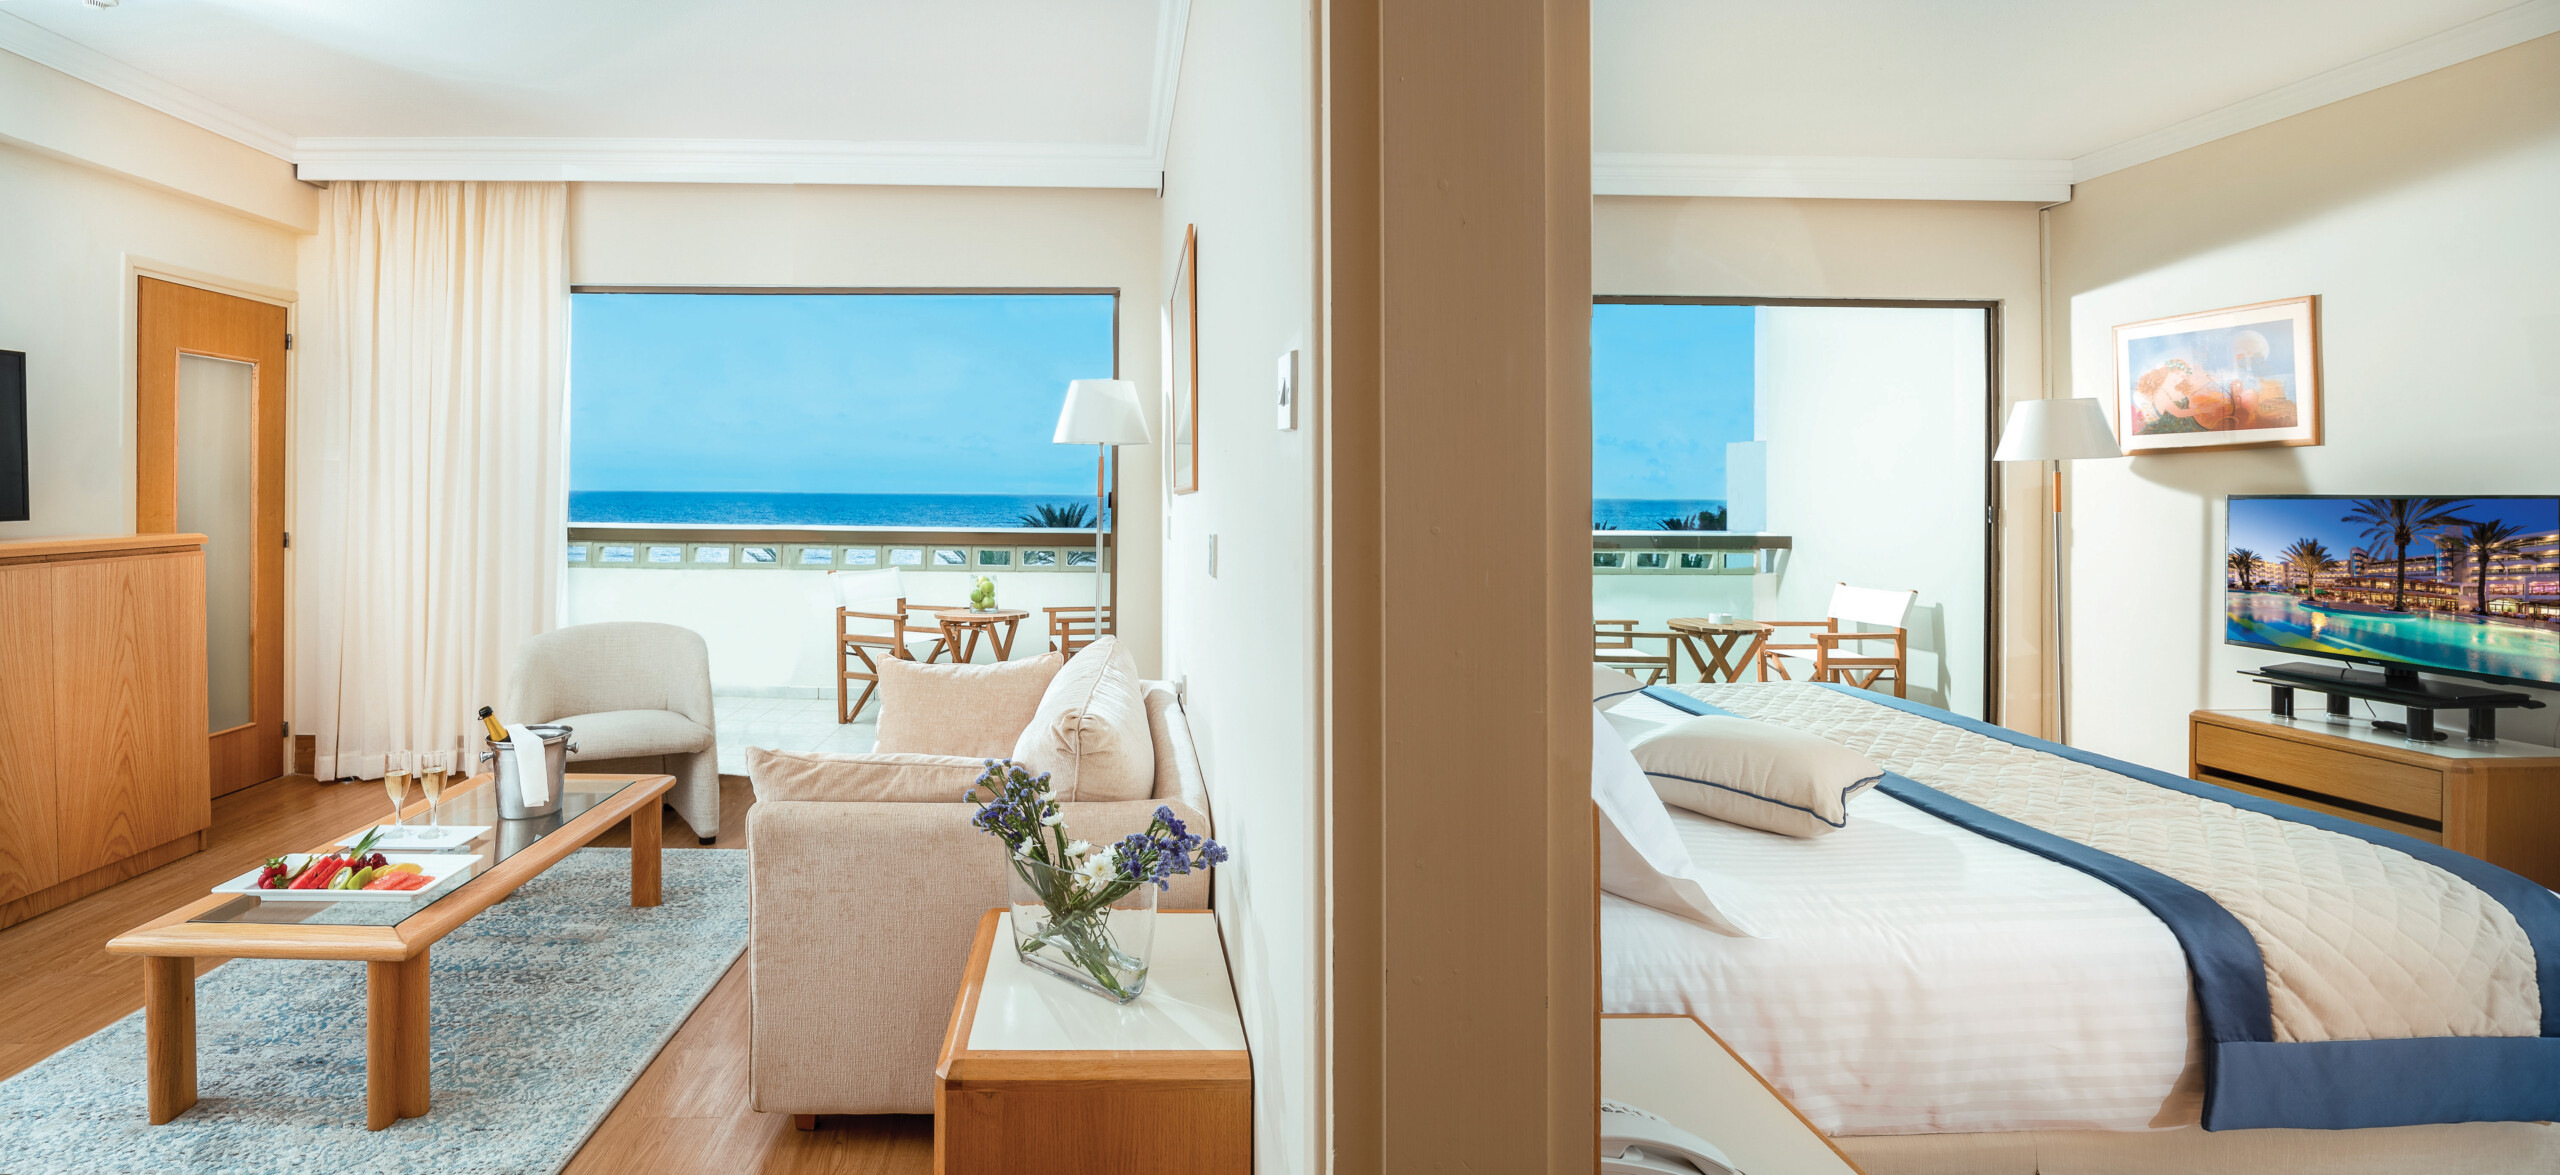 56 ATHENA BEACH HOTEL FAMILY ONE BEDROOM SUITE